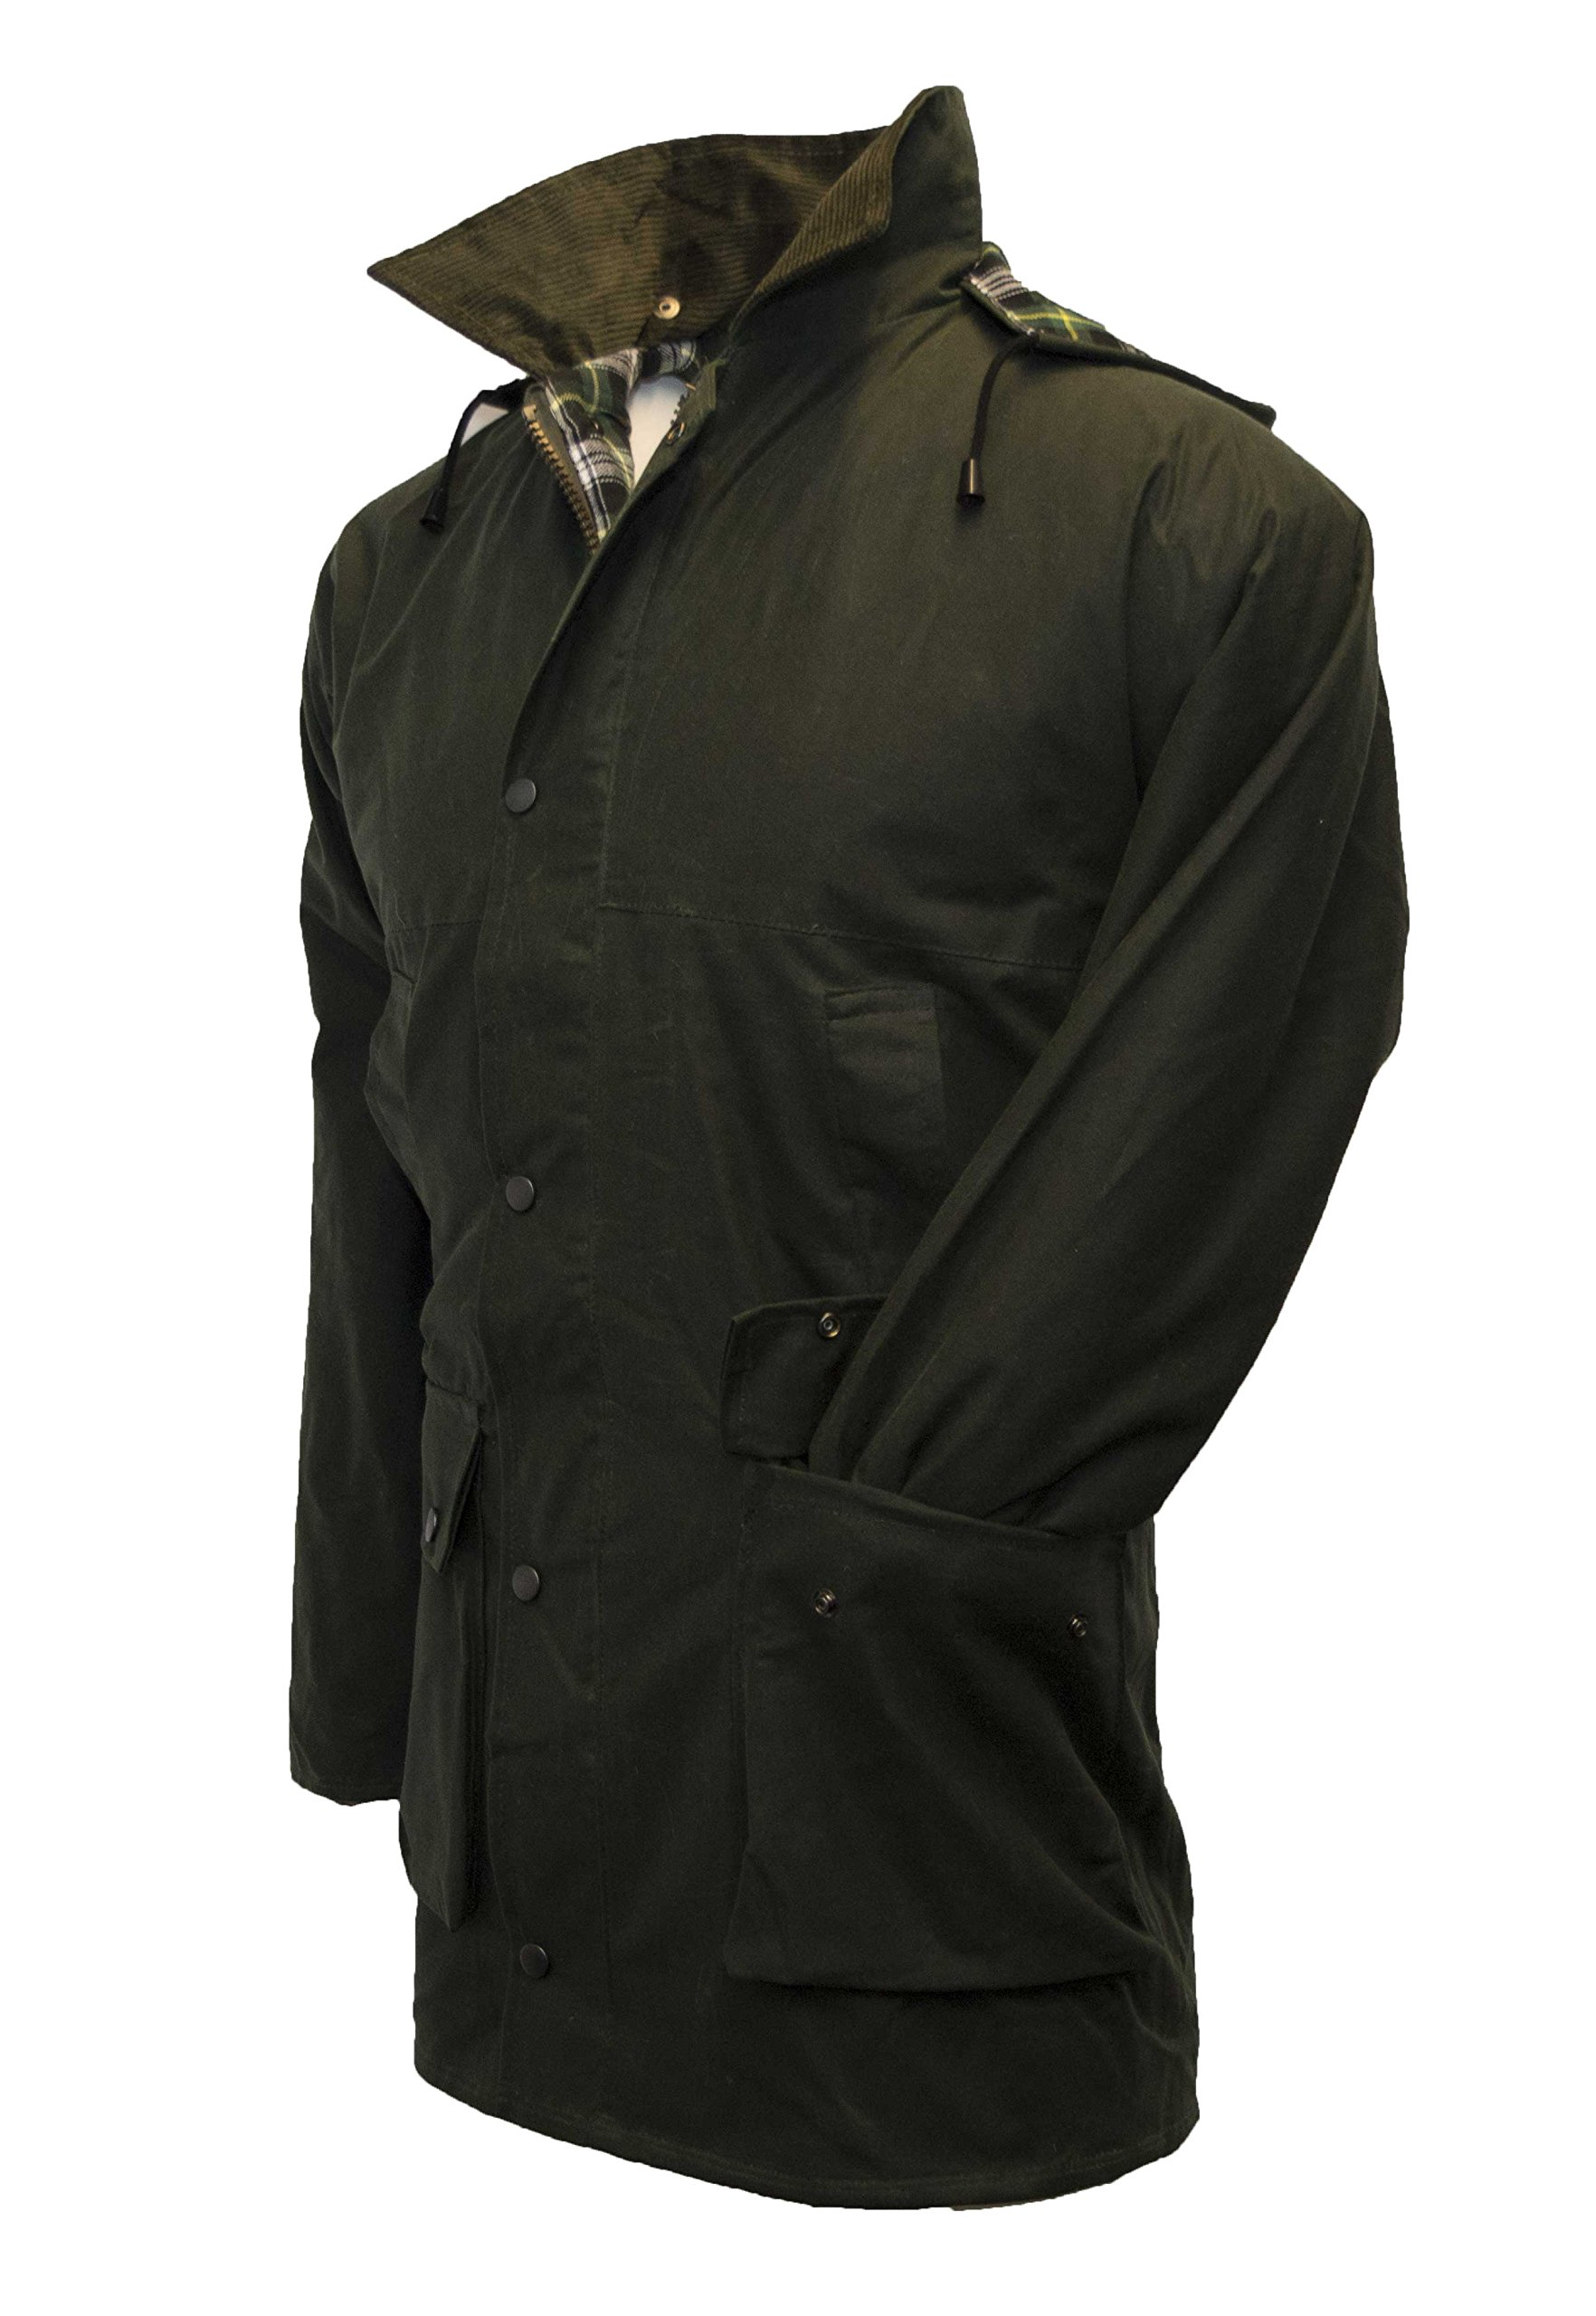 Walker & Hawkes - Mens Unpadded Wax Jacket Countrywear Hunting Waxed Coat - Olive - XXX-Large by Walker and Hawkes (Image #1)